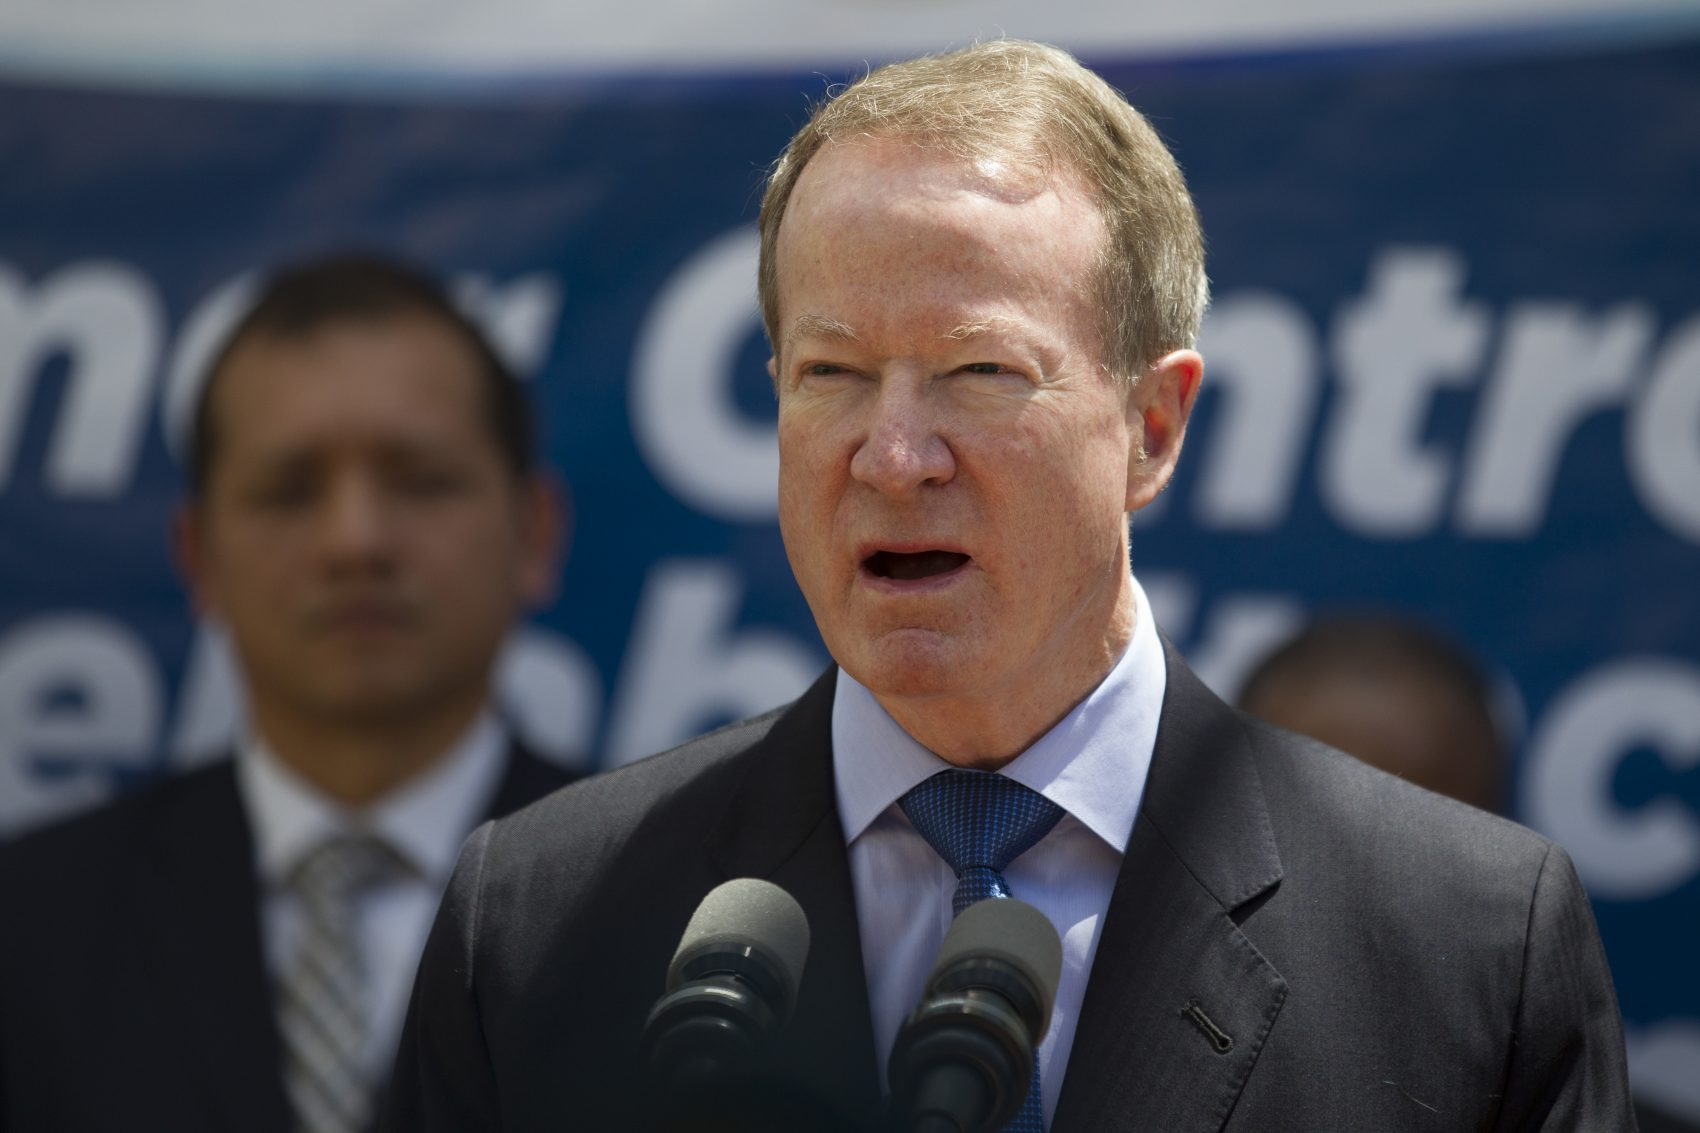 In this March 6, 2017 file photo William Brownfield, assistant secretary for International Narcotics and Law Enforcement Affairs, speaks during a joint press conference with Guatemala's President Jimmy Morales at the inauguration of a women's jail in Fraijanes, Guatemala. (Moises Castillo, file/AP)